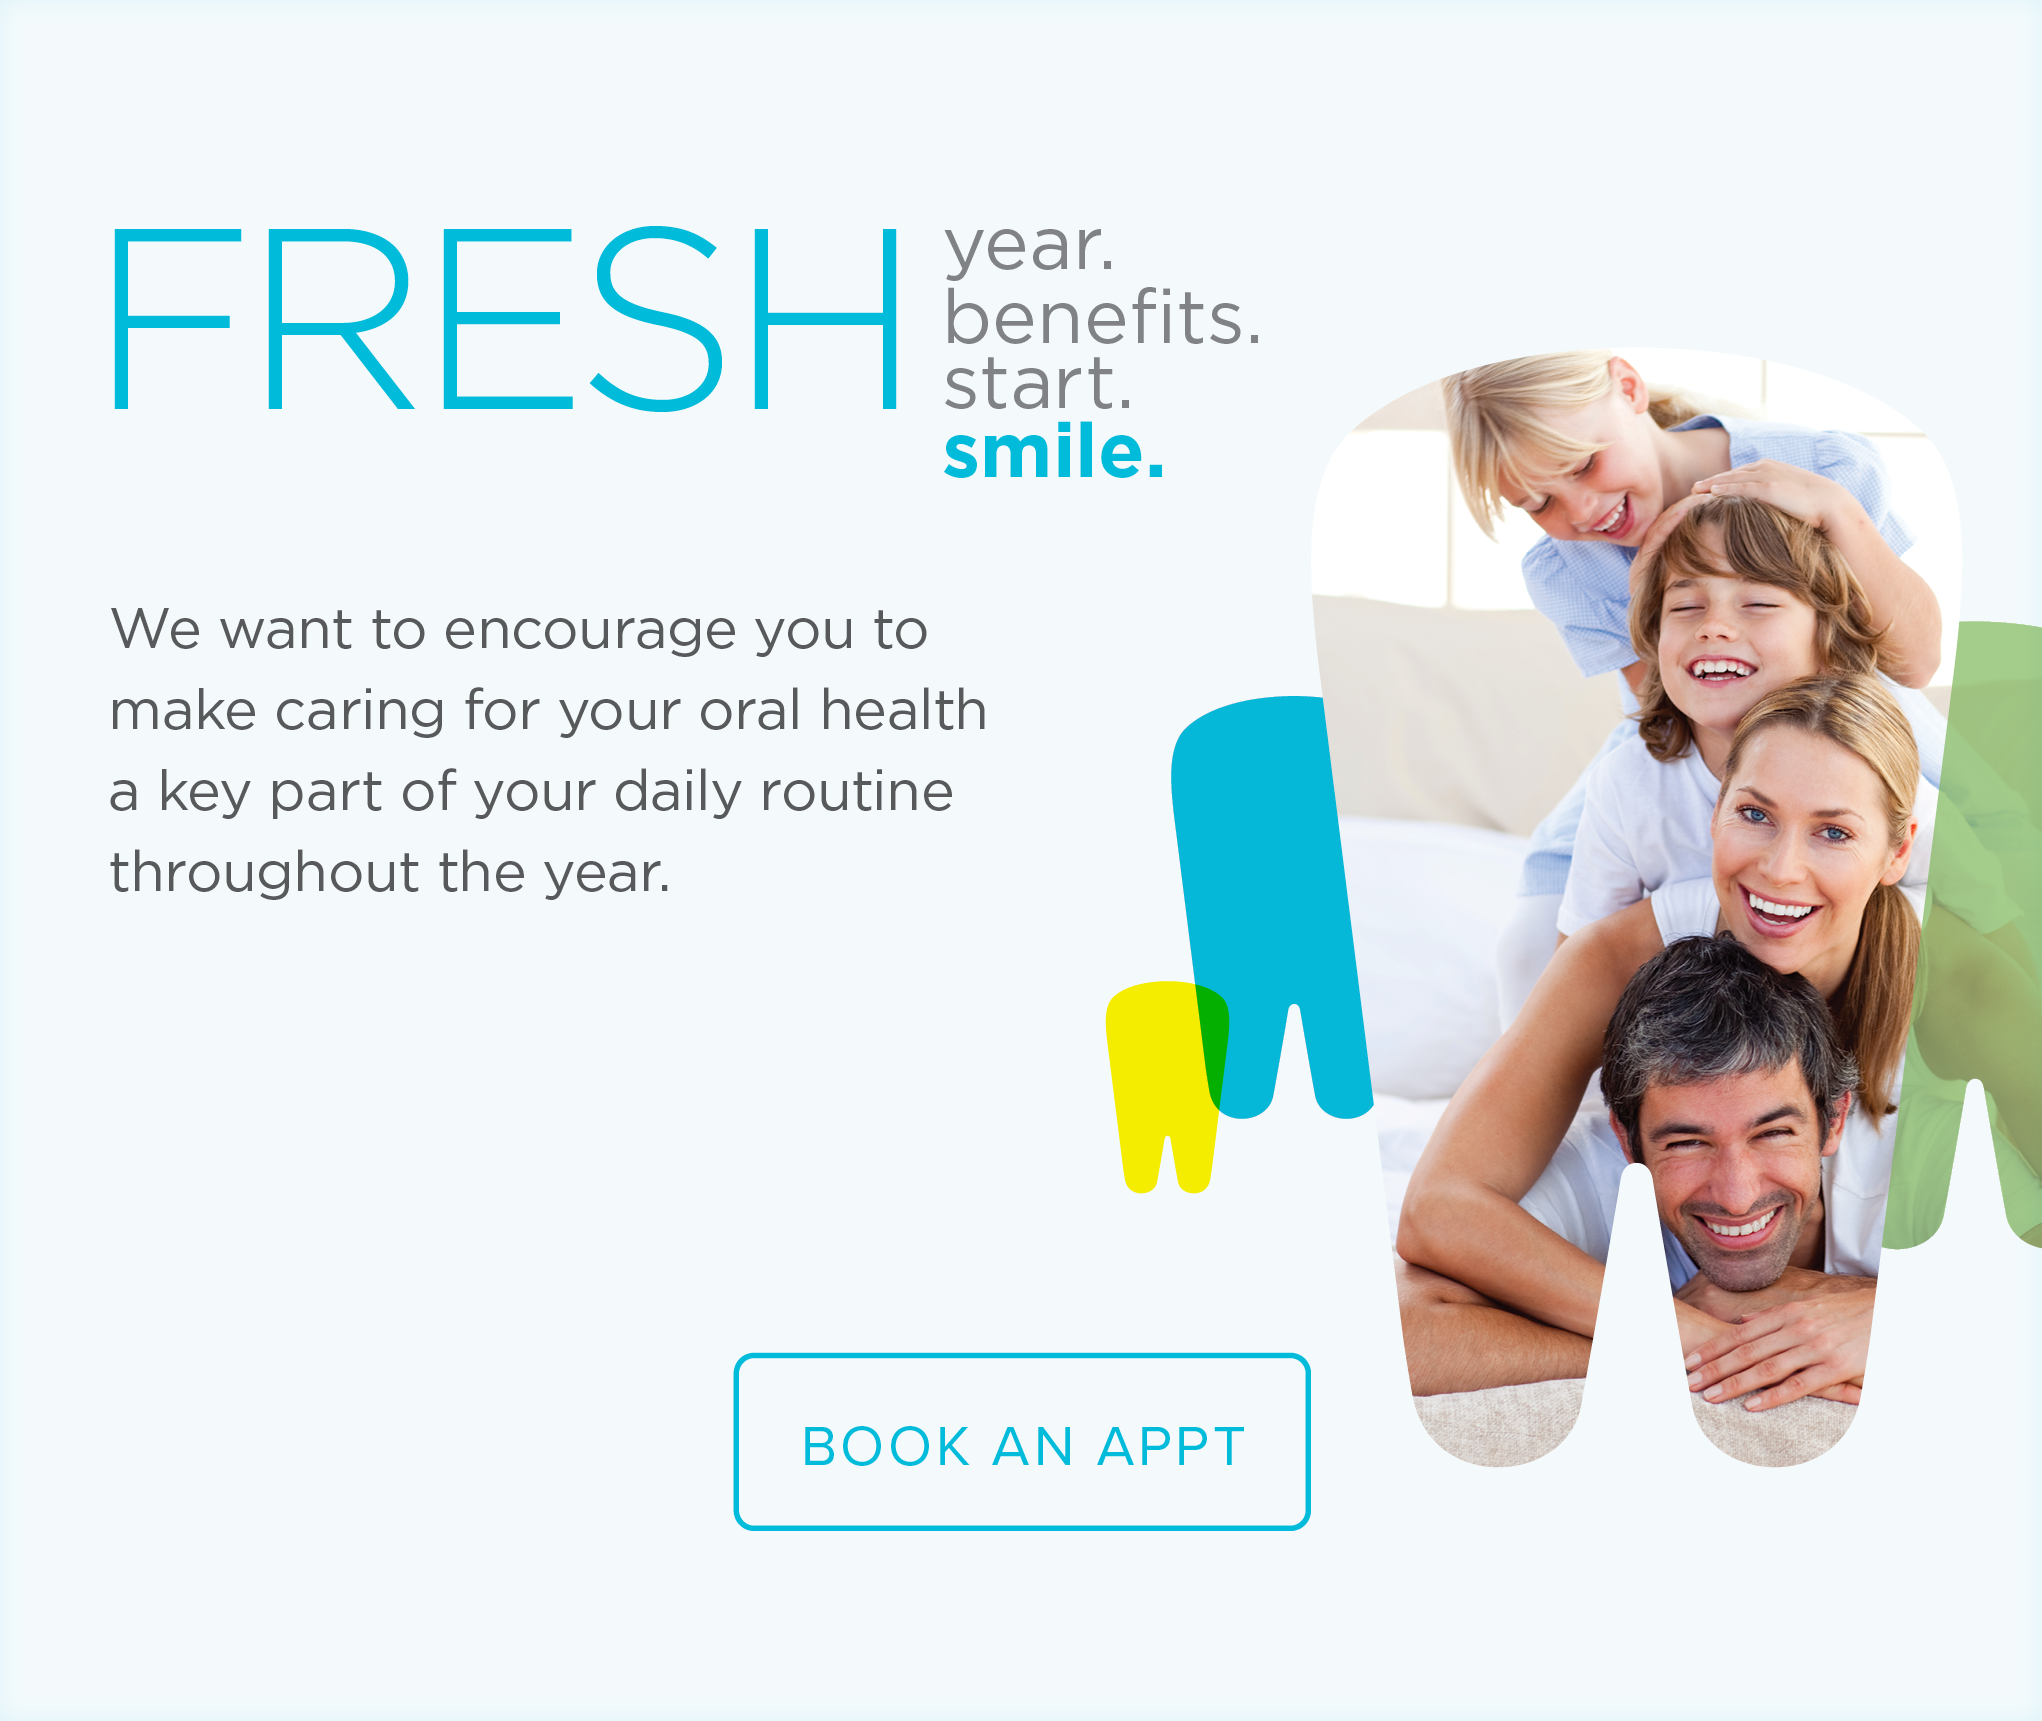 Escondido Smiles Dentistry and Orthodontics - Make the Most of Your Benefits